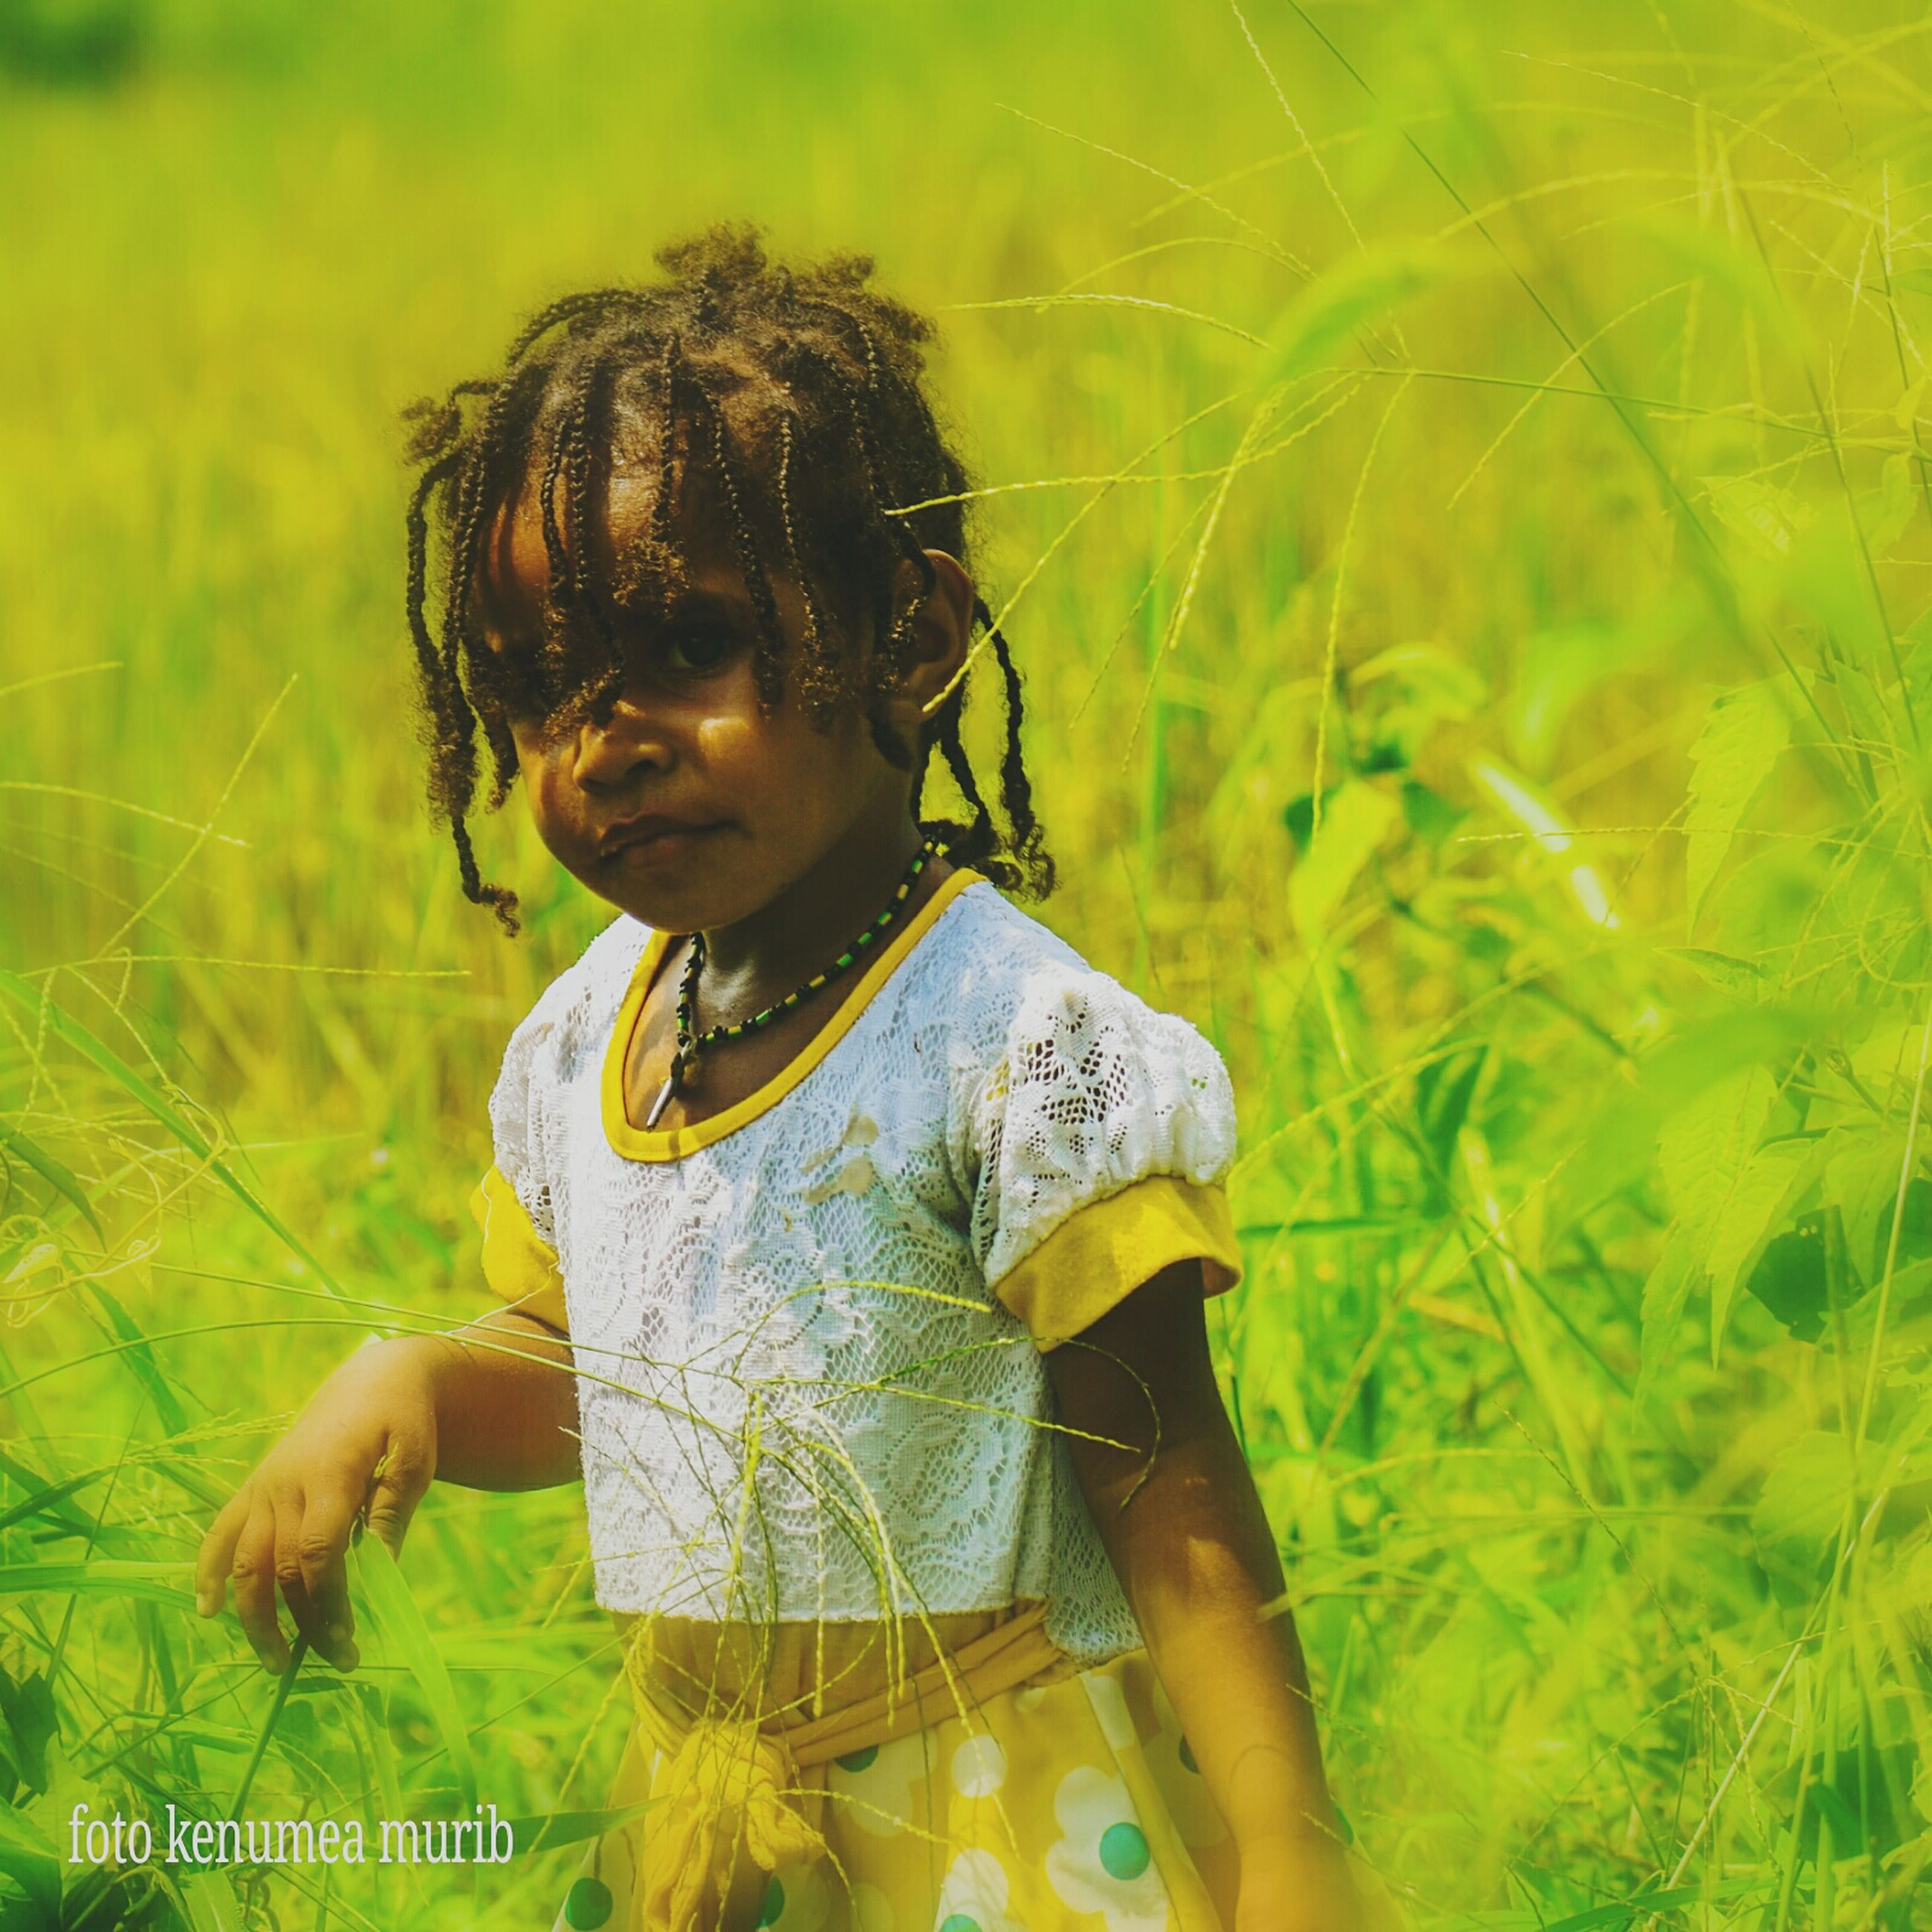 child, childhood, real people, girls, leisure activity, one person, plant, females, land, field, women, grass, cute, lifestyles, day, innocence, nature, casual clothing, outdoors, hairstyle